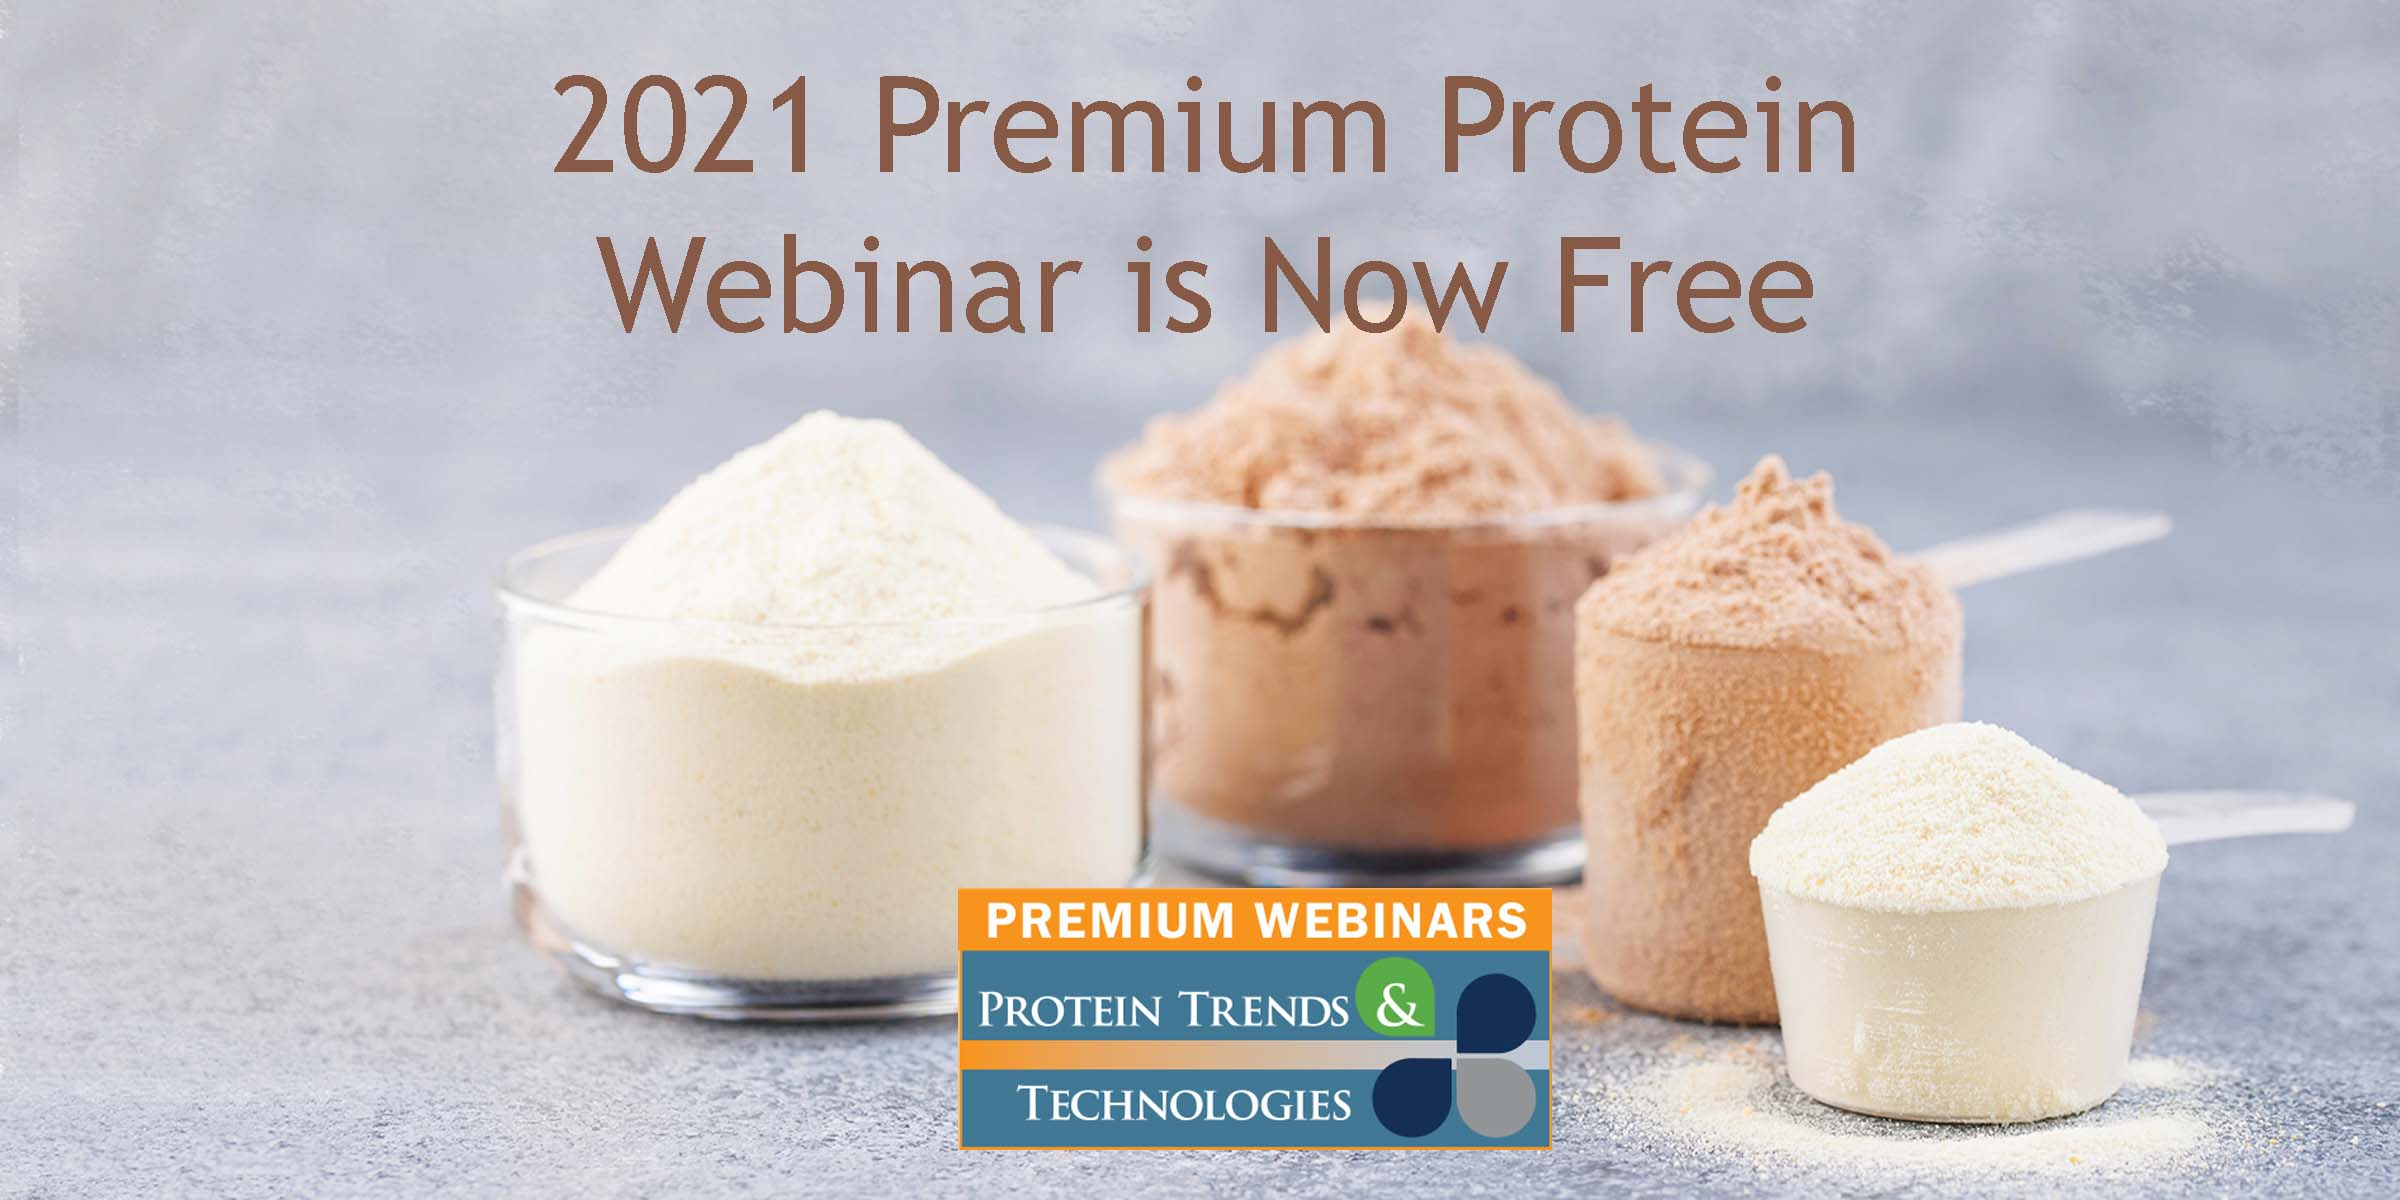 Webinar on Overcoming Protein Technical Issues Is Now Free